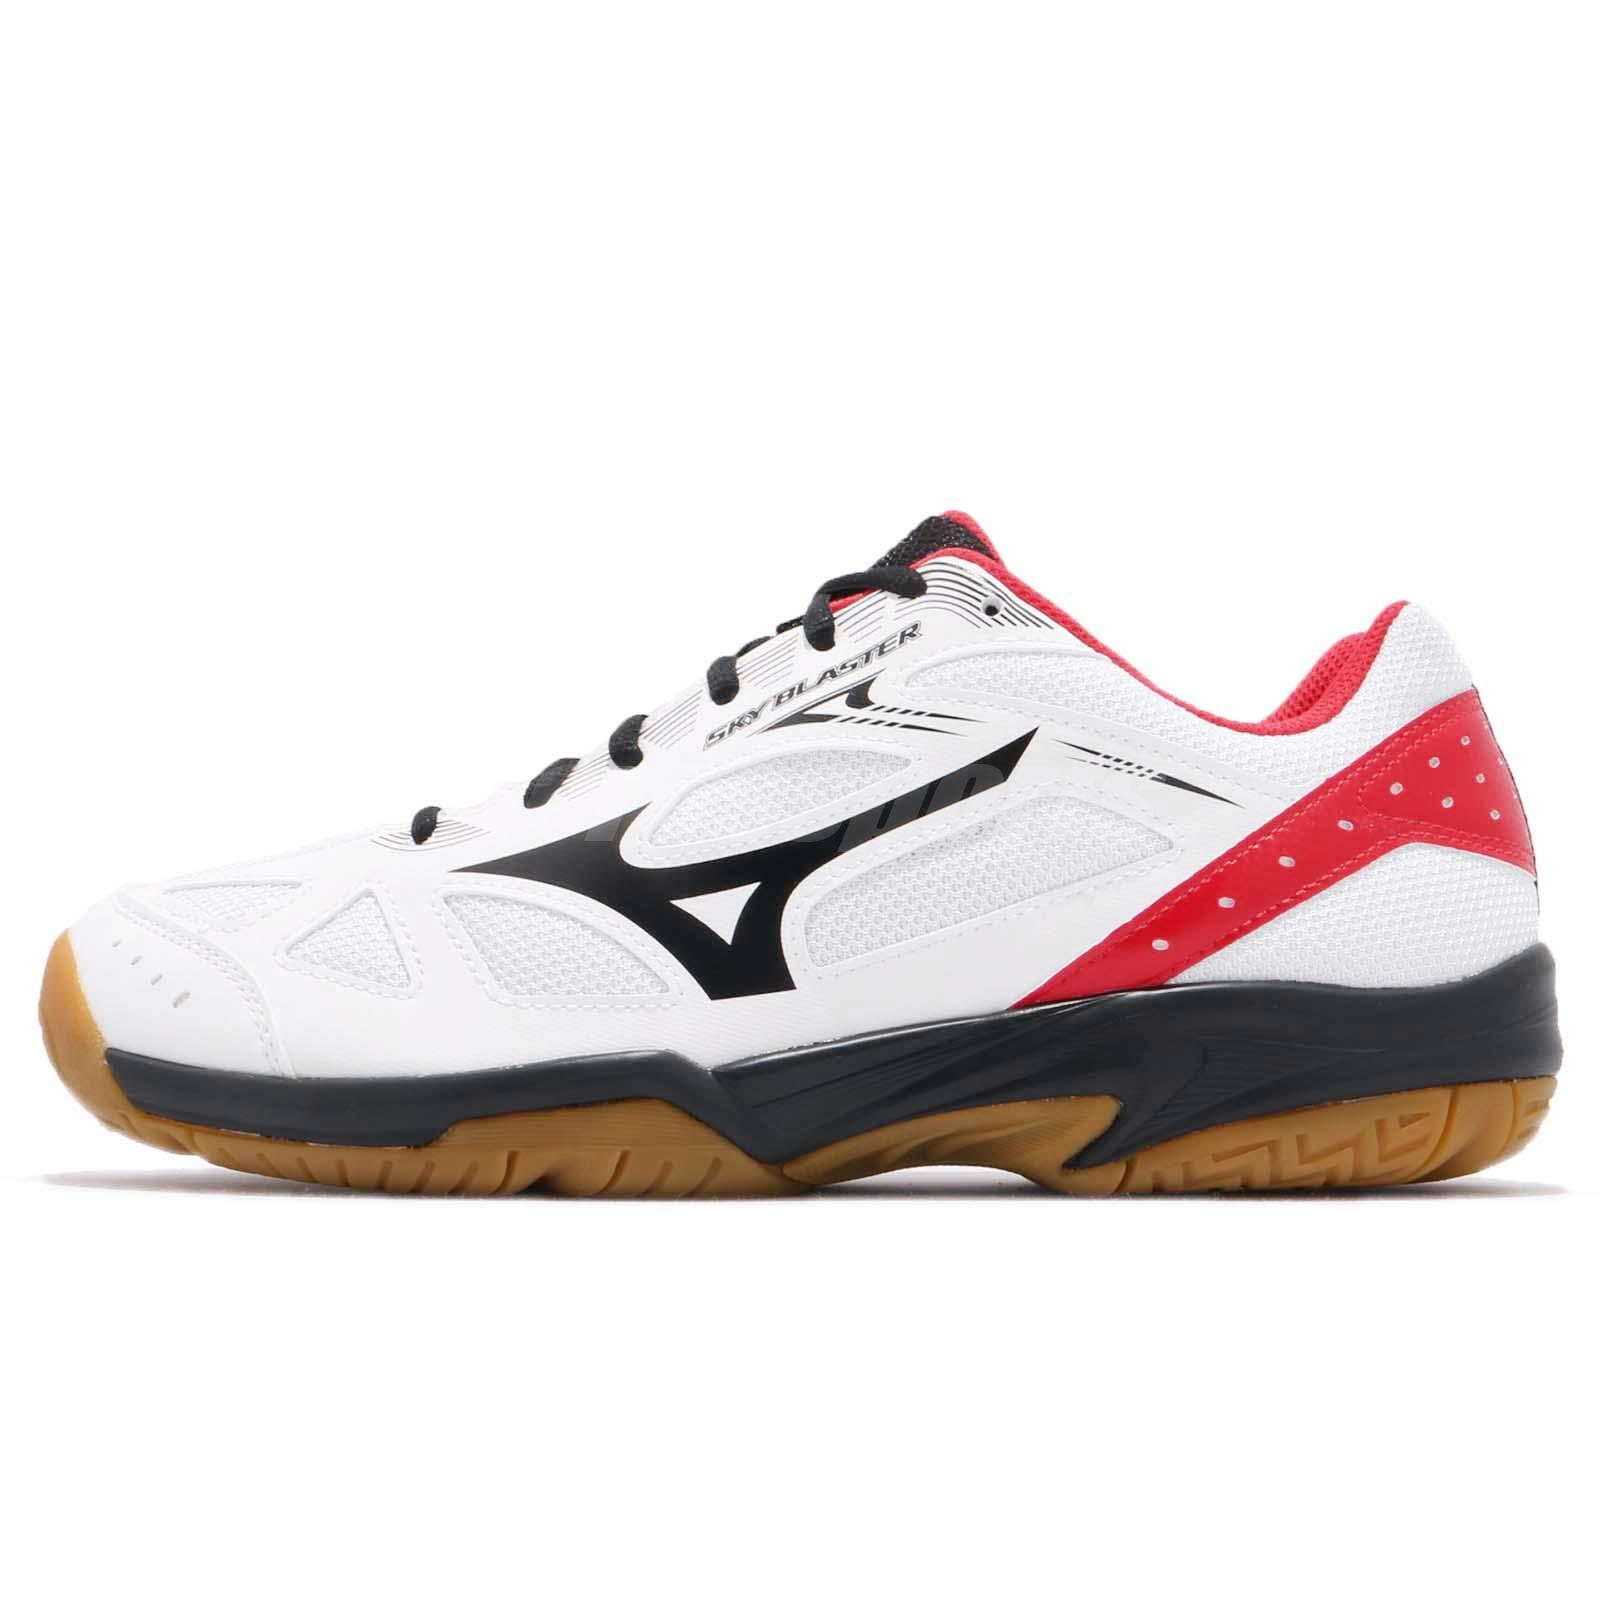 1944a010d9 Mizuno Sky Blaster White Black Red Gum Men Badminton Volleyball Shoe  71GA1945-09